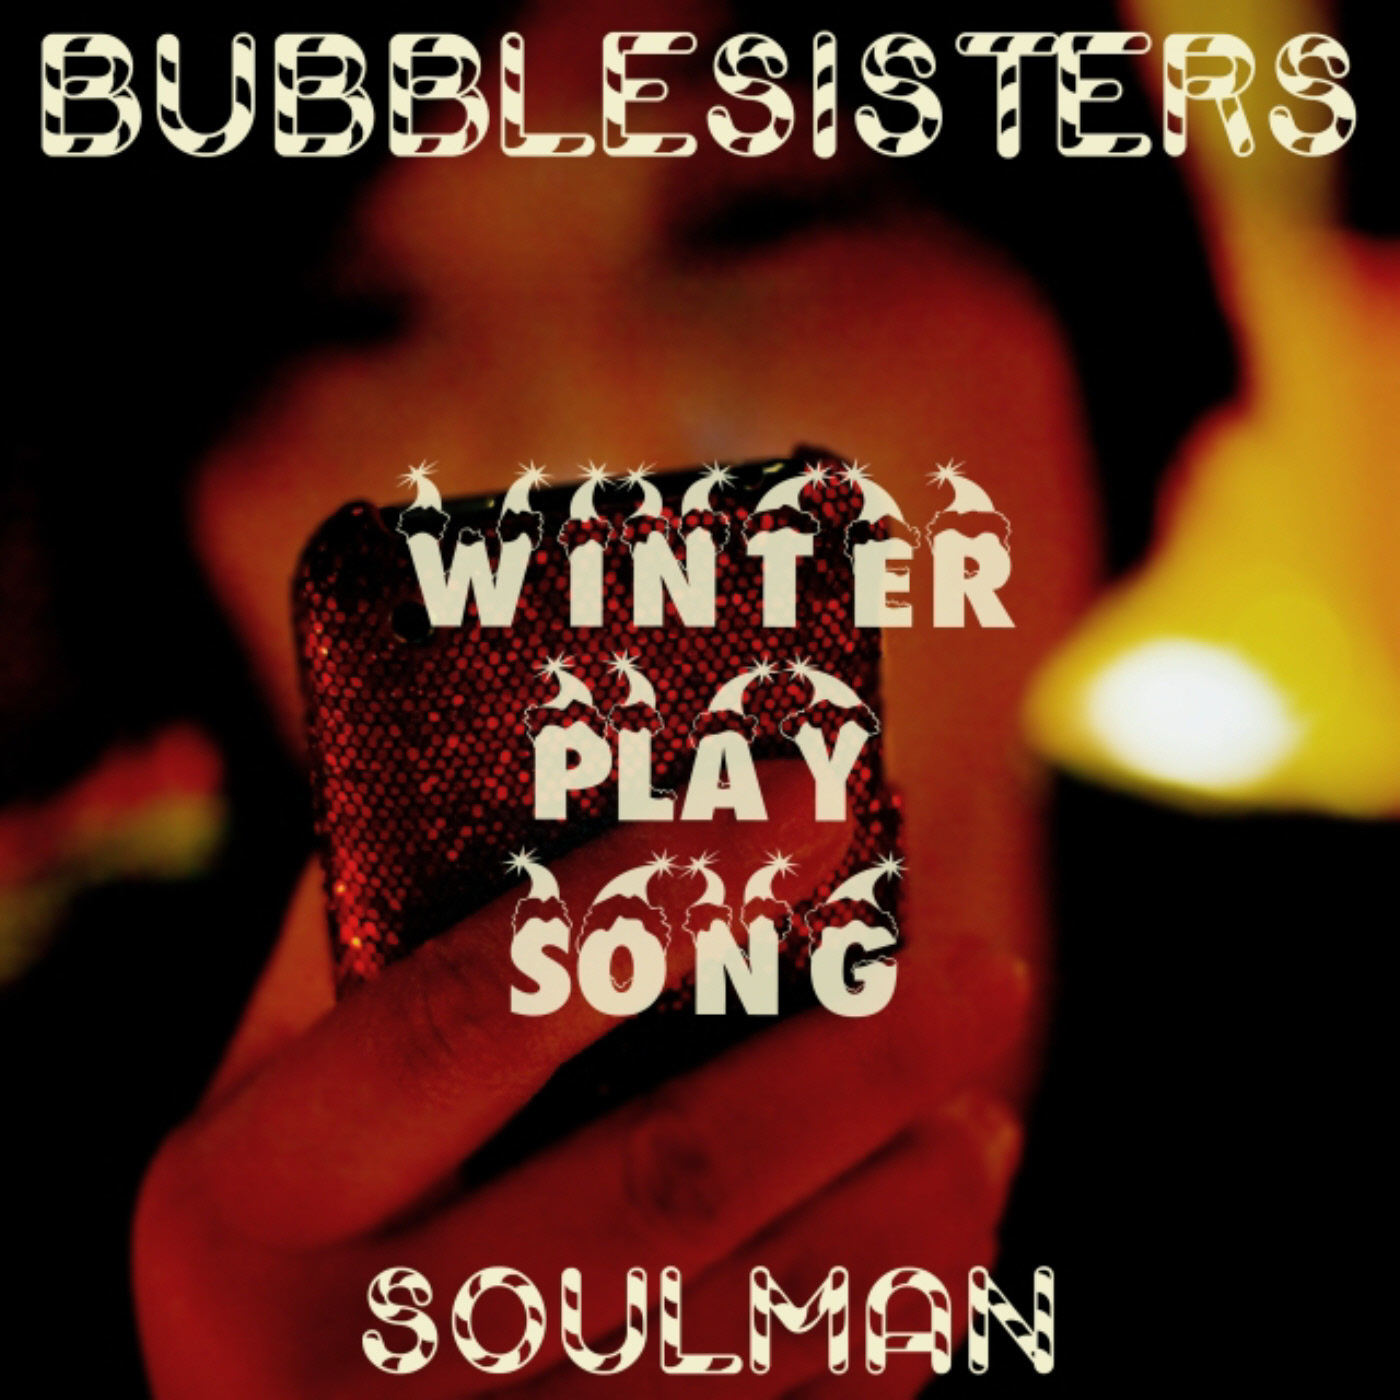 Winter Play Song